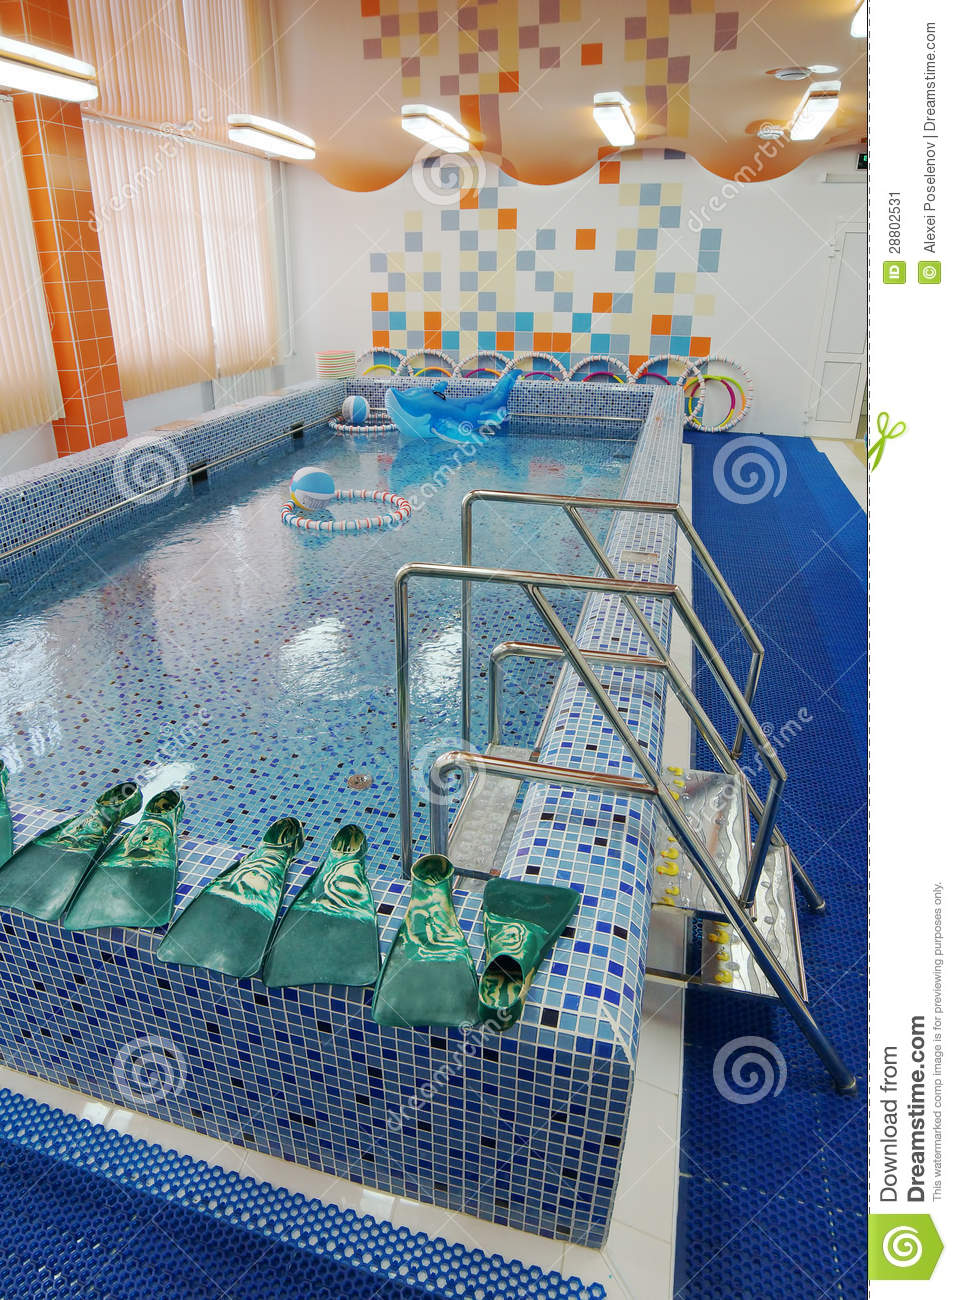 Swimming pool in a children garden stock image image for Kids swimming pool garden